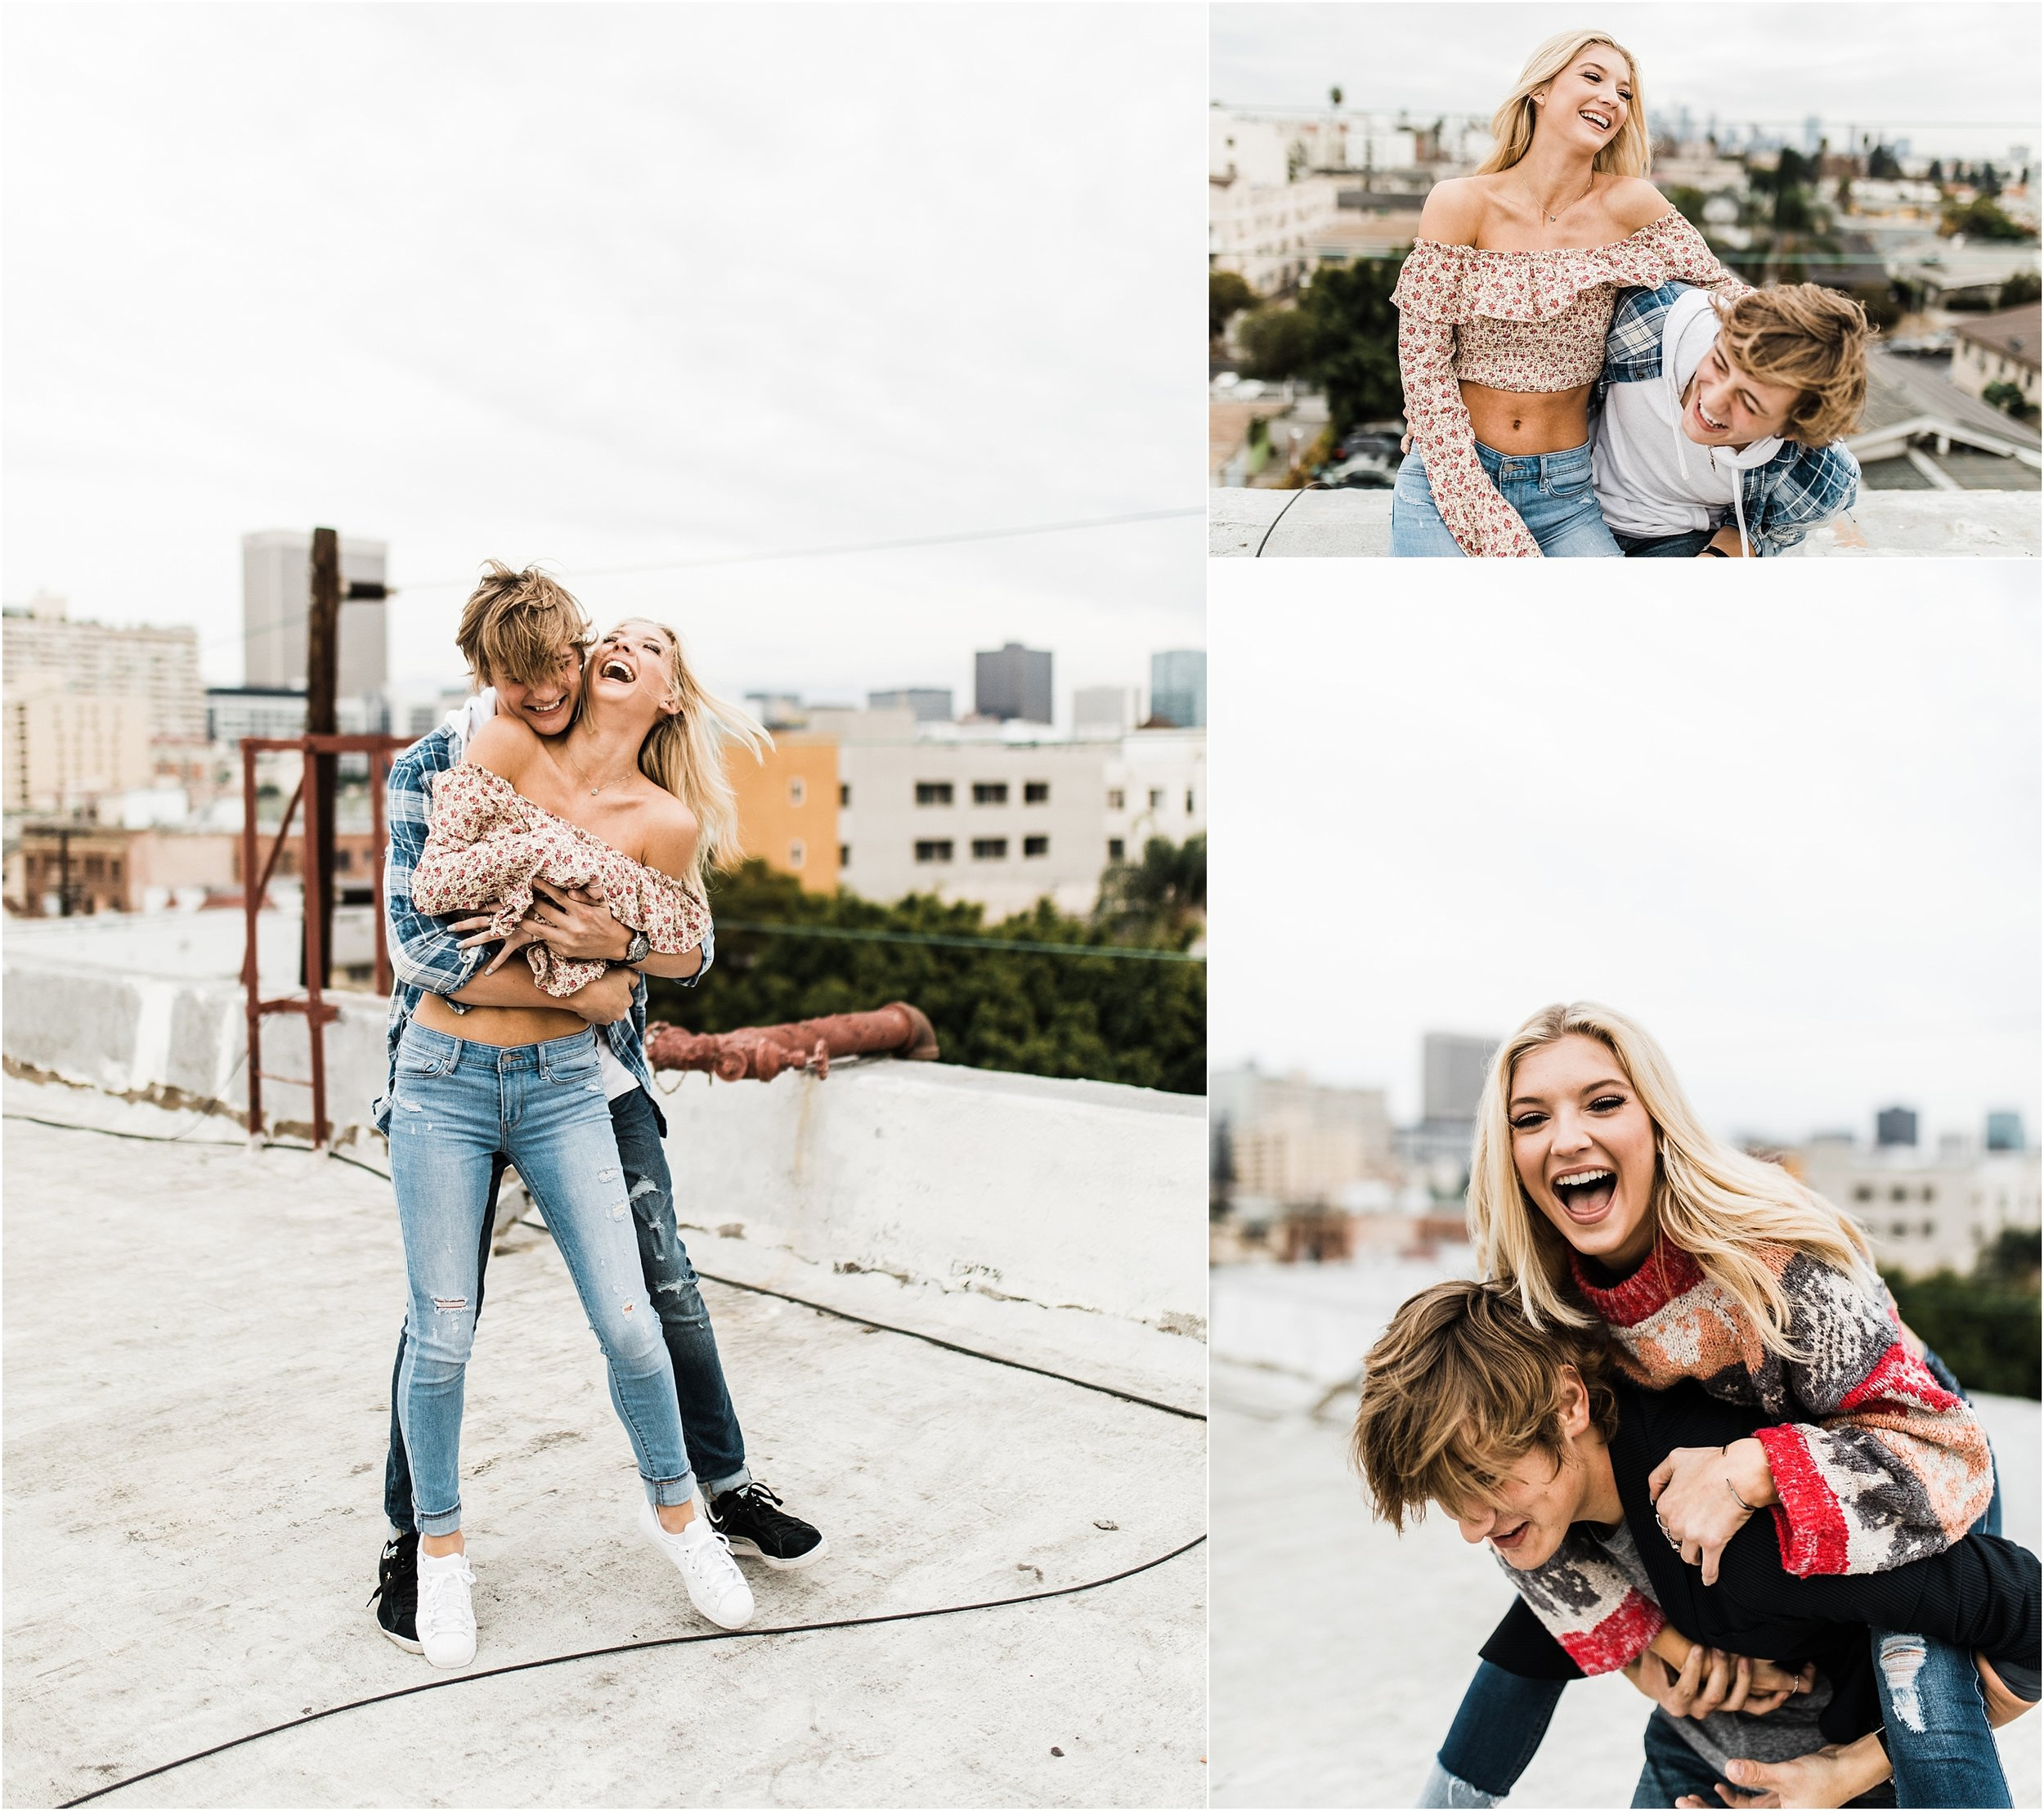 Koreatown-Downtown-Los-Angeles-DTLA-Engagement-Photos-Clarisse-Rae-Southern-California-Wedding-Photographer-&-Videographer